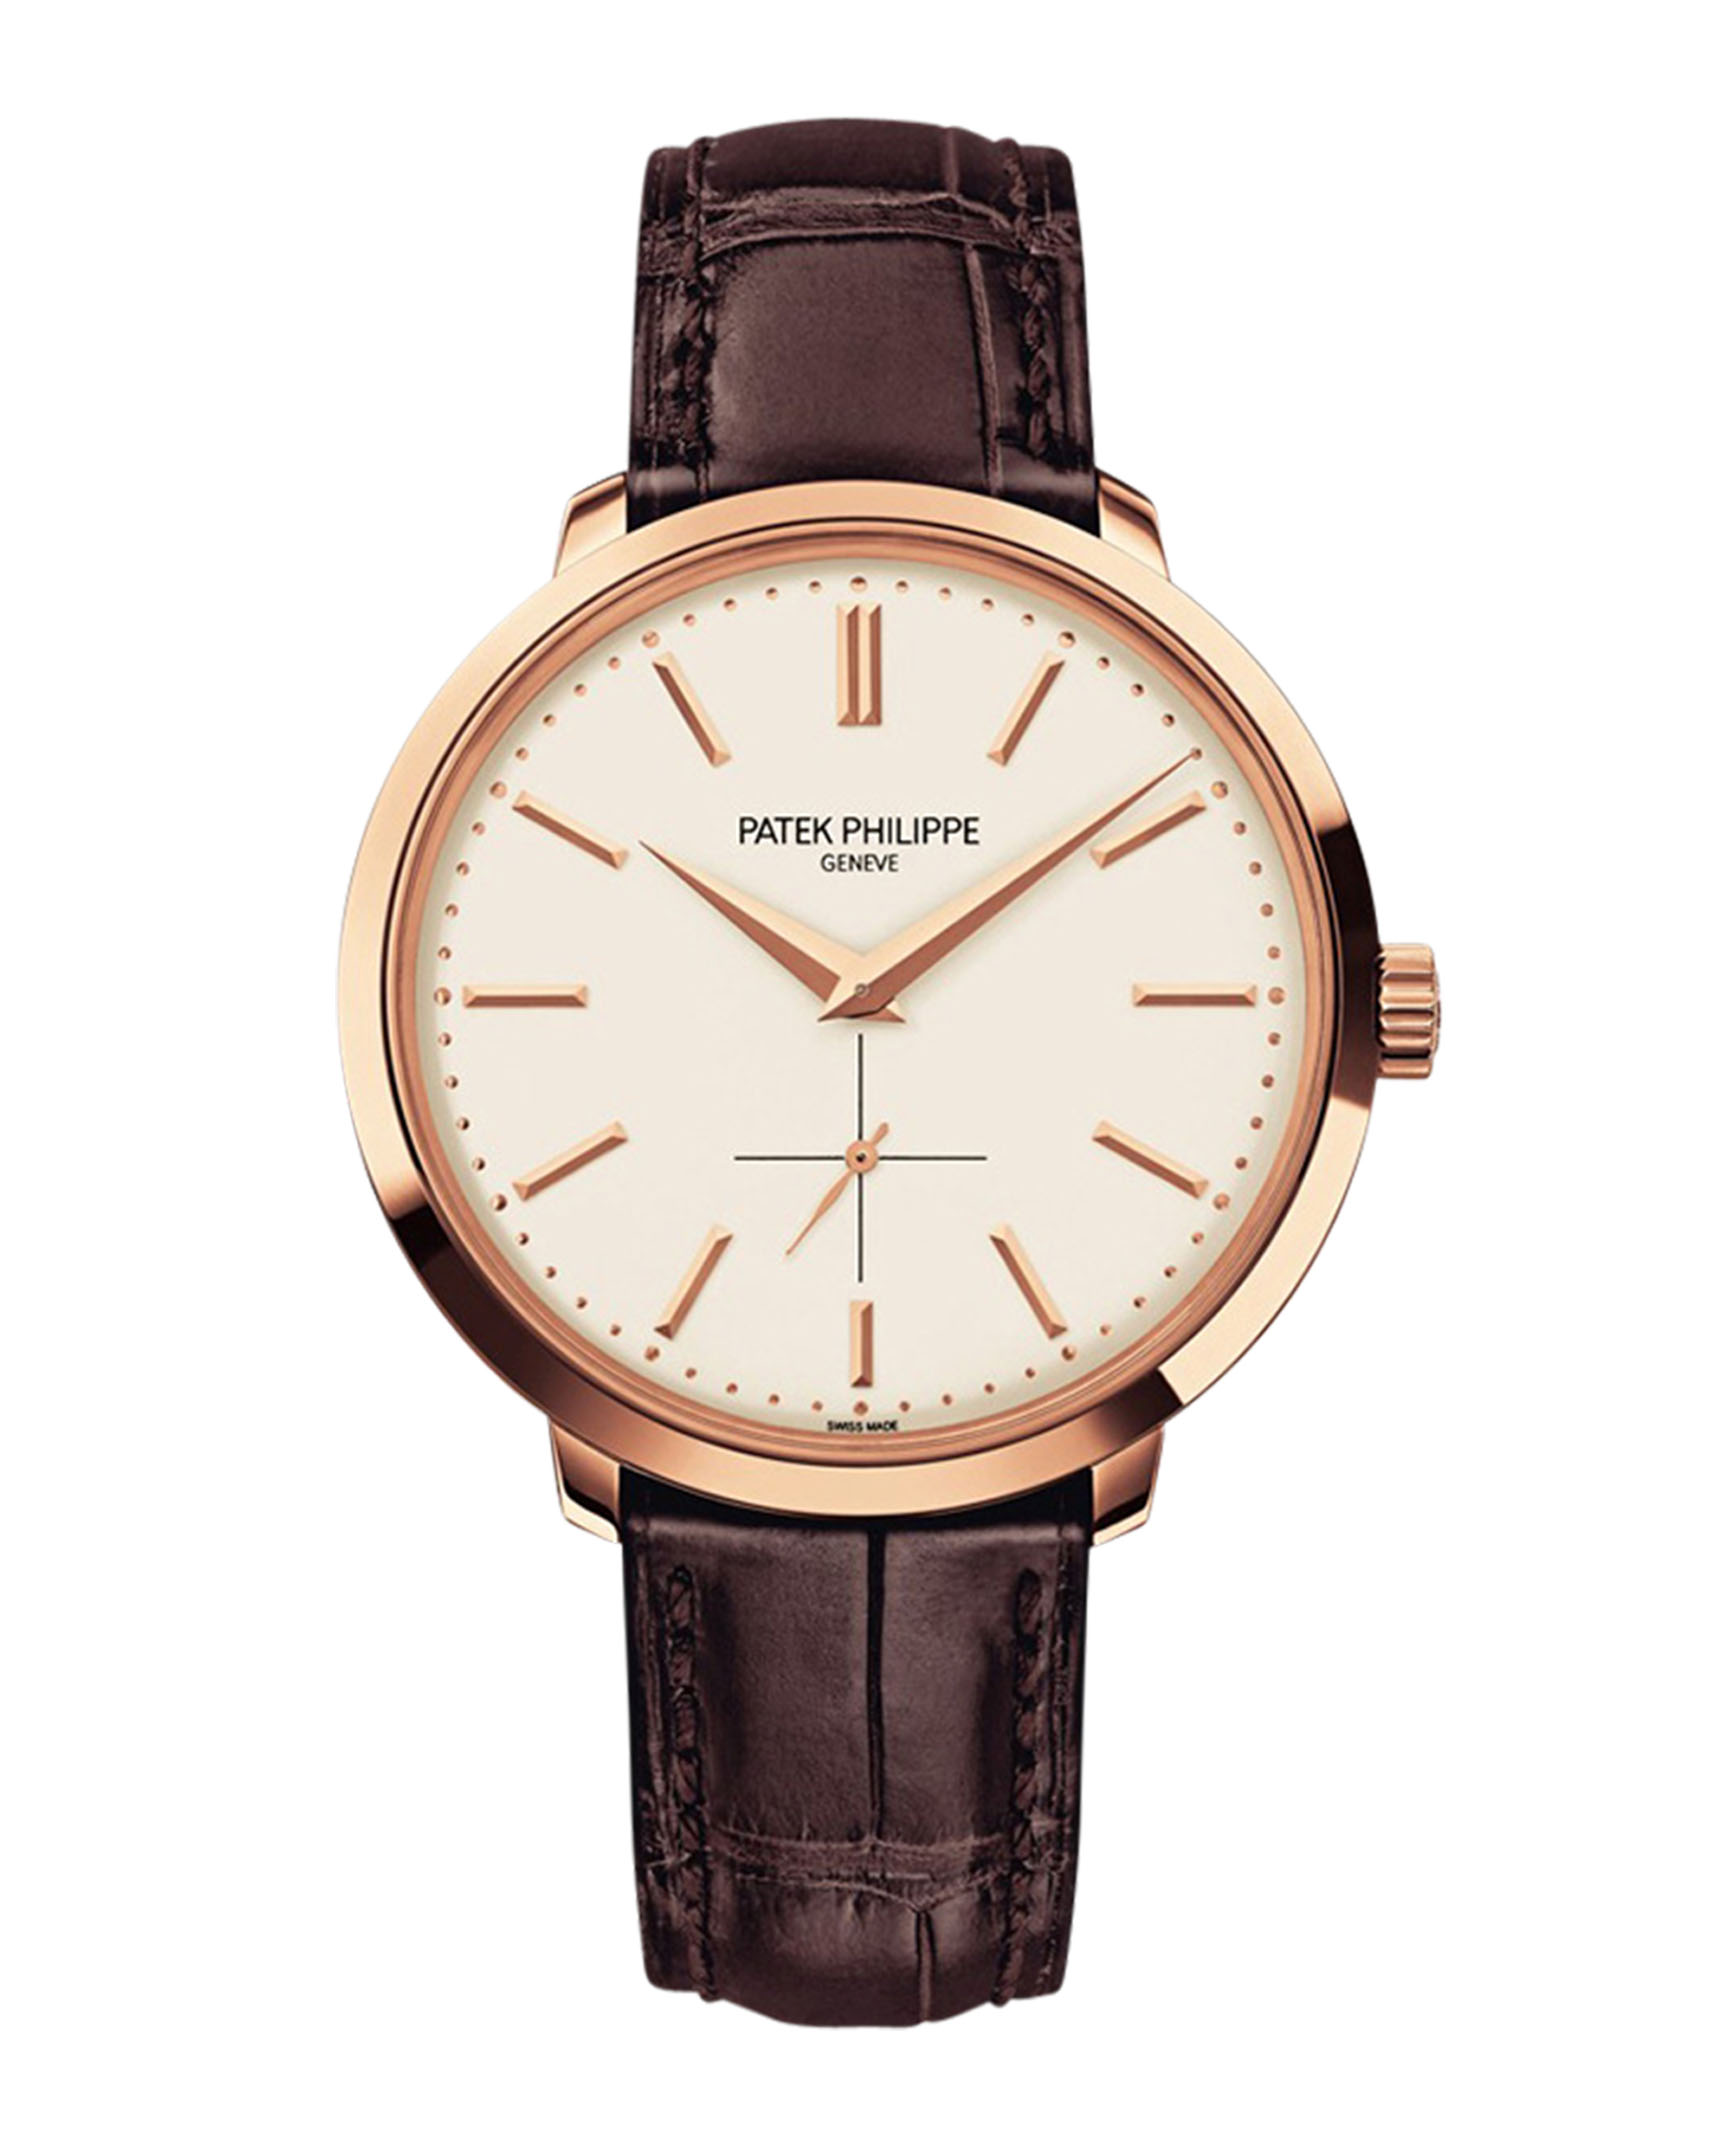 Patek Philippe Calatrava Silver Dial 18k Rose Gold Brown Leather 5123R-001